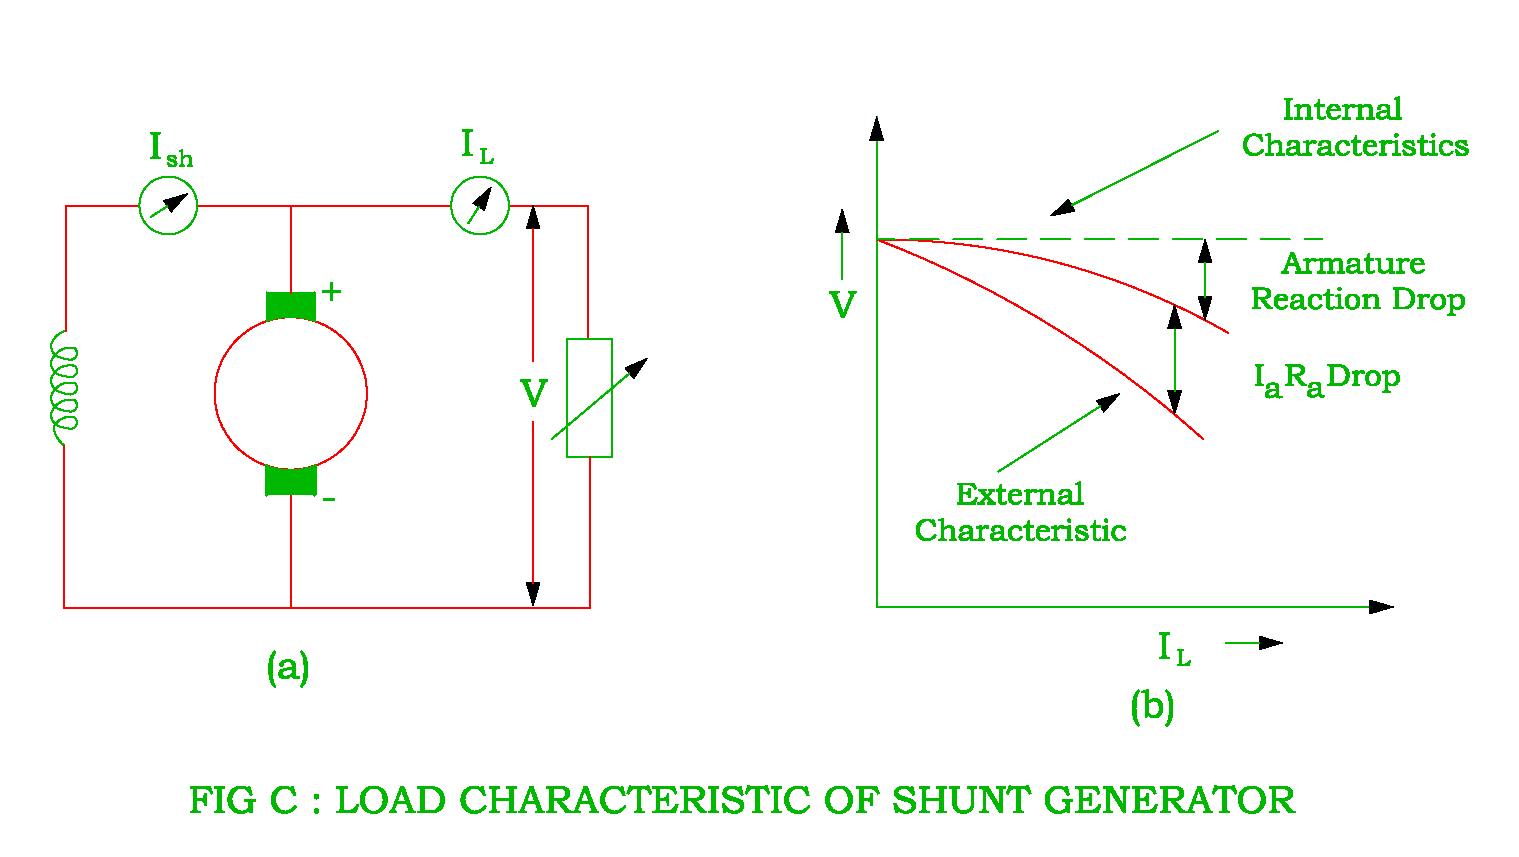 Characteristics Of Dc Shunt Series And Compound Generator Motor Circuit Diagram Free Download Wiring The Connection To Obtain External Internal Dcshunt Is Shown In Figure C